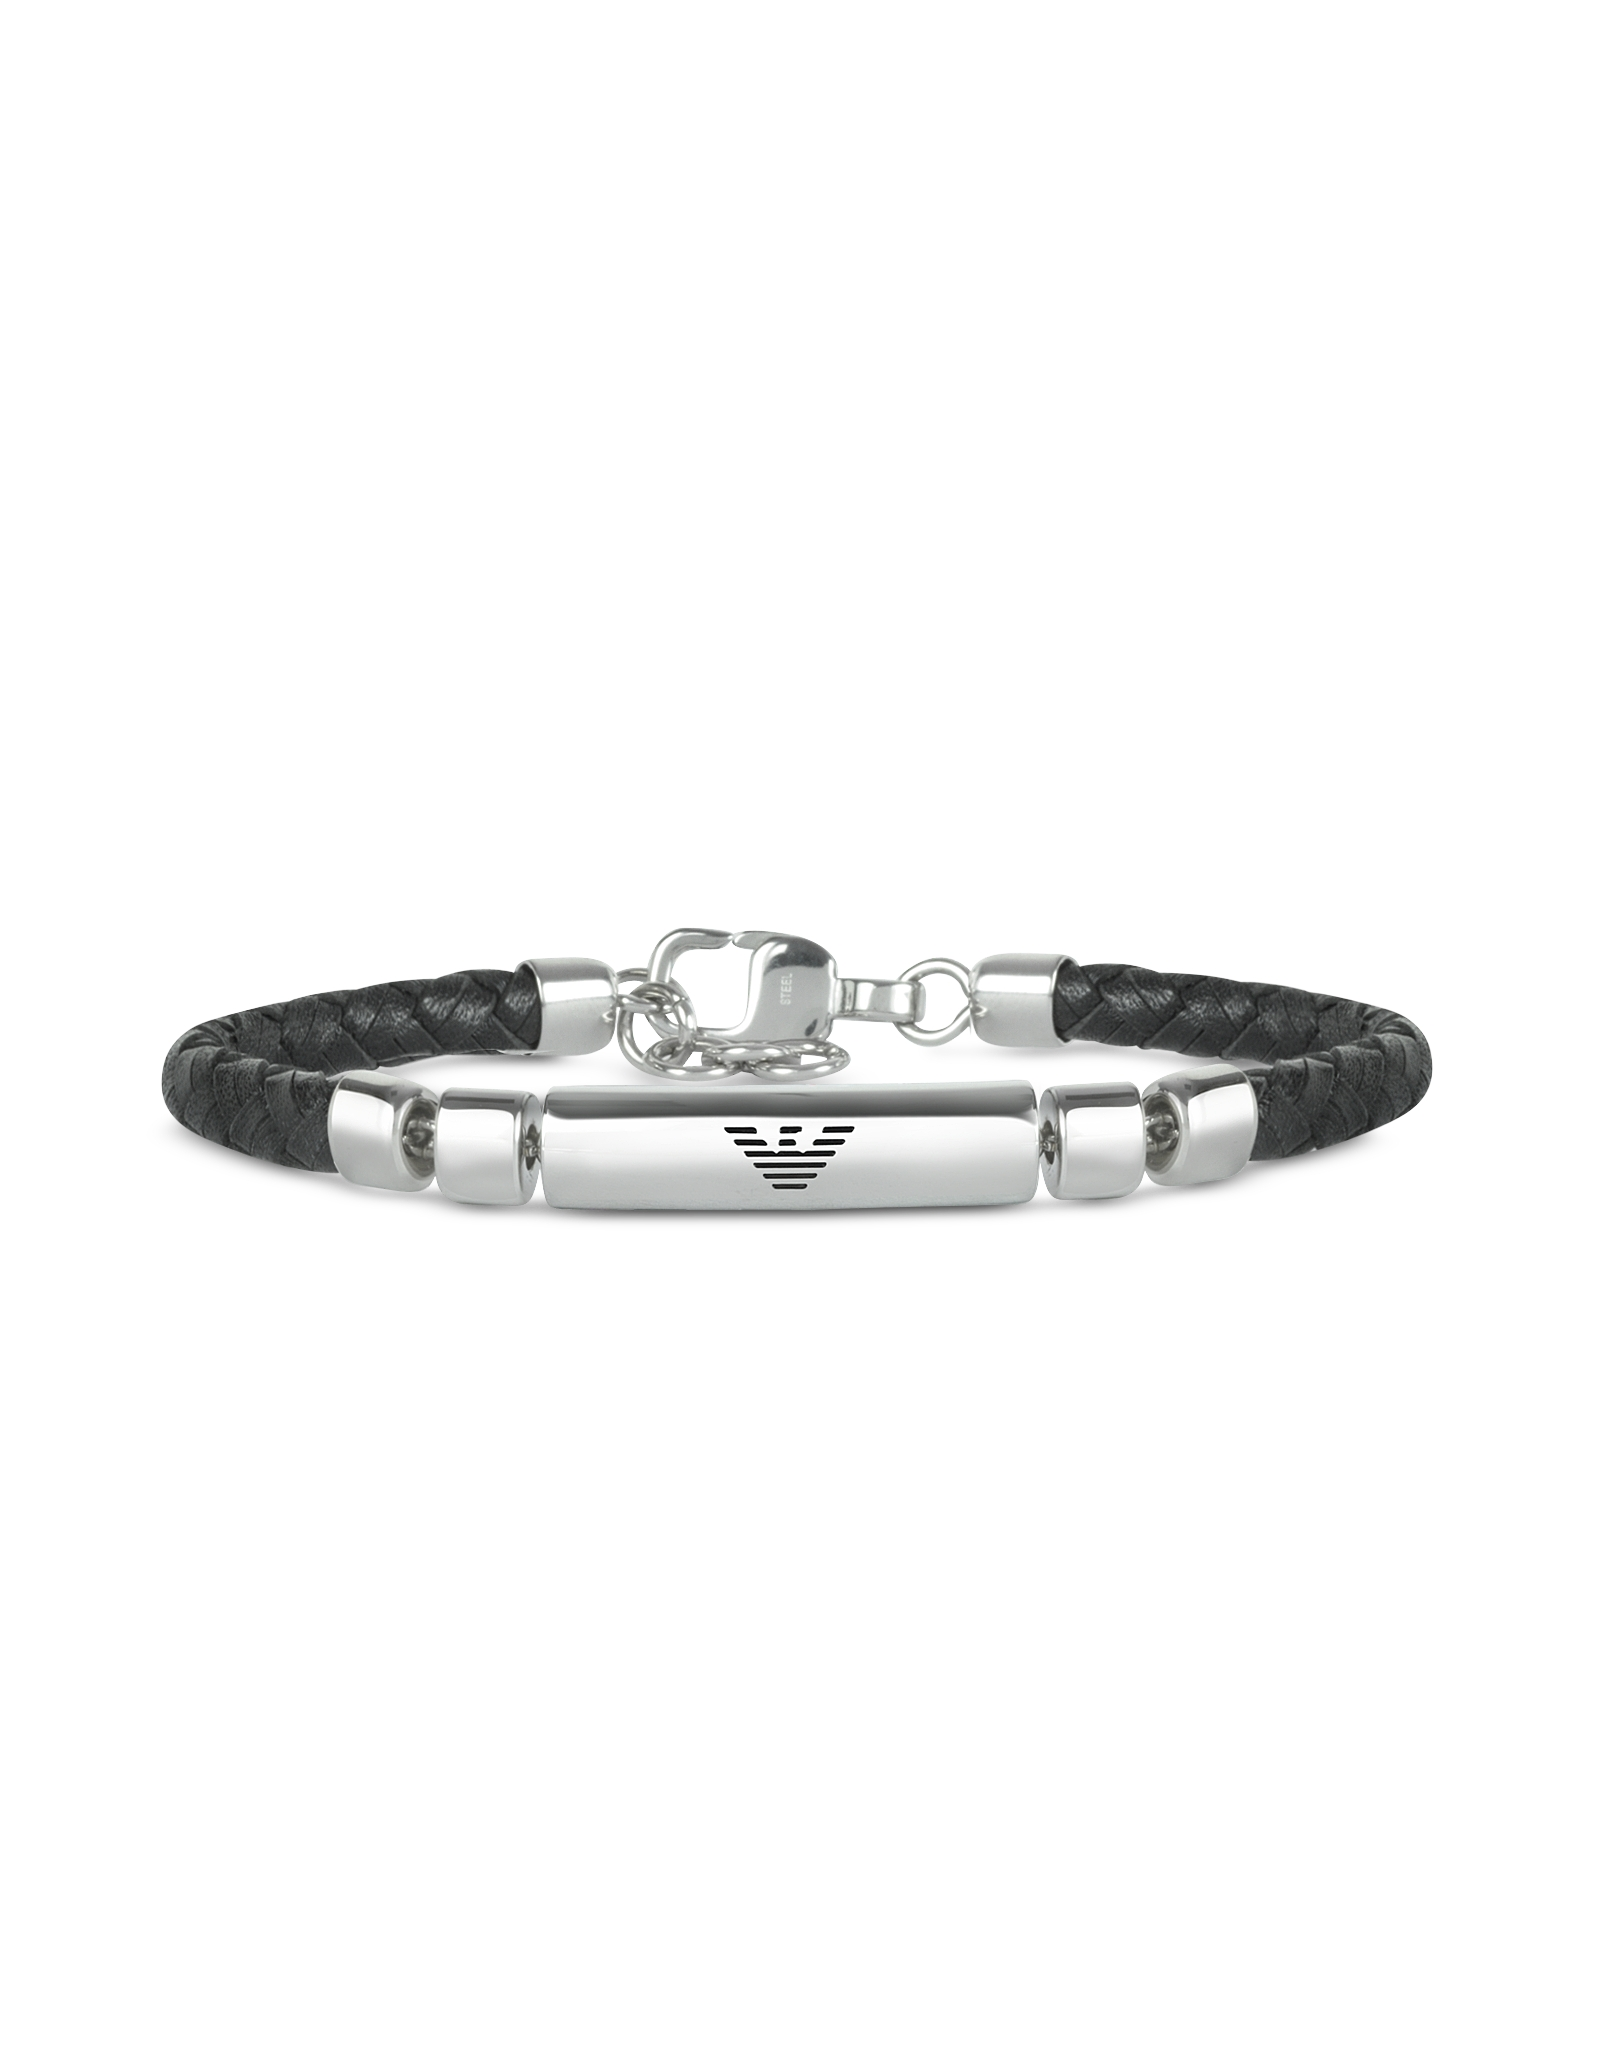 d454cef26 Emporio Armani Stainless Steel and Leather Mens Bracelet in Black ...